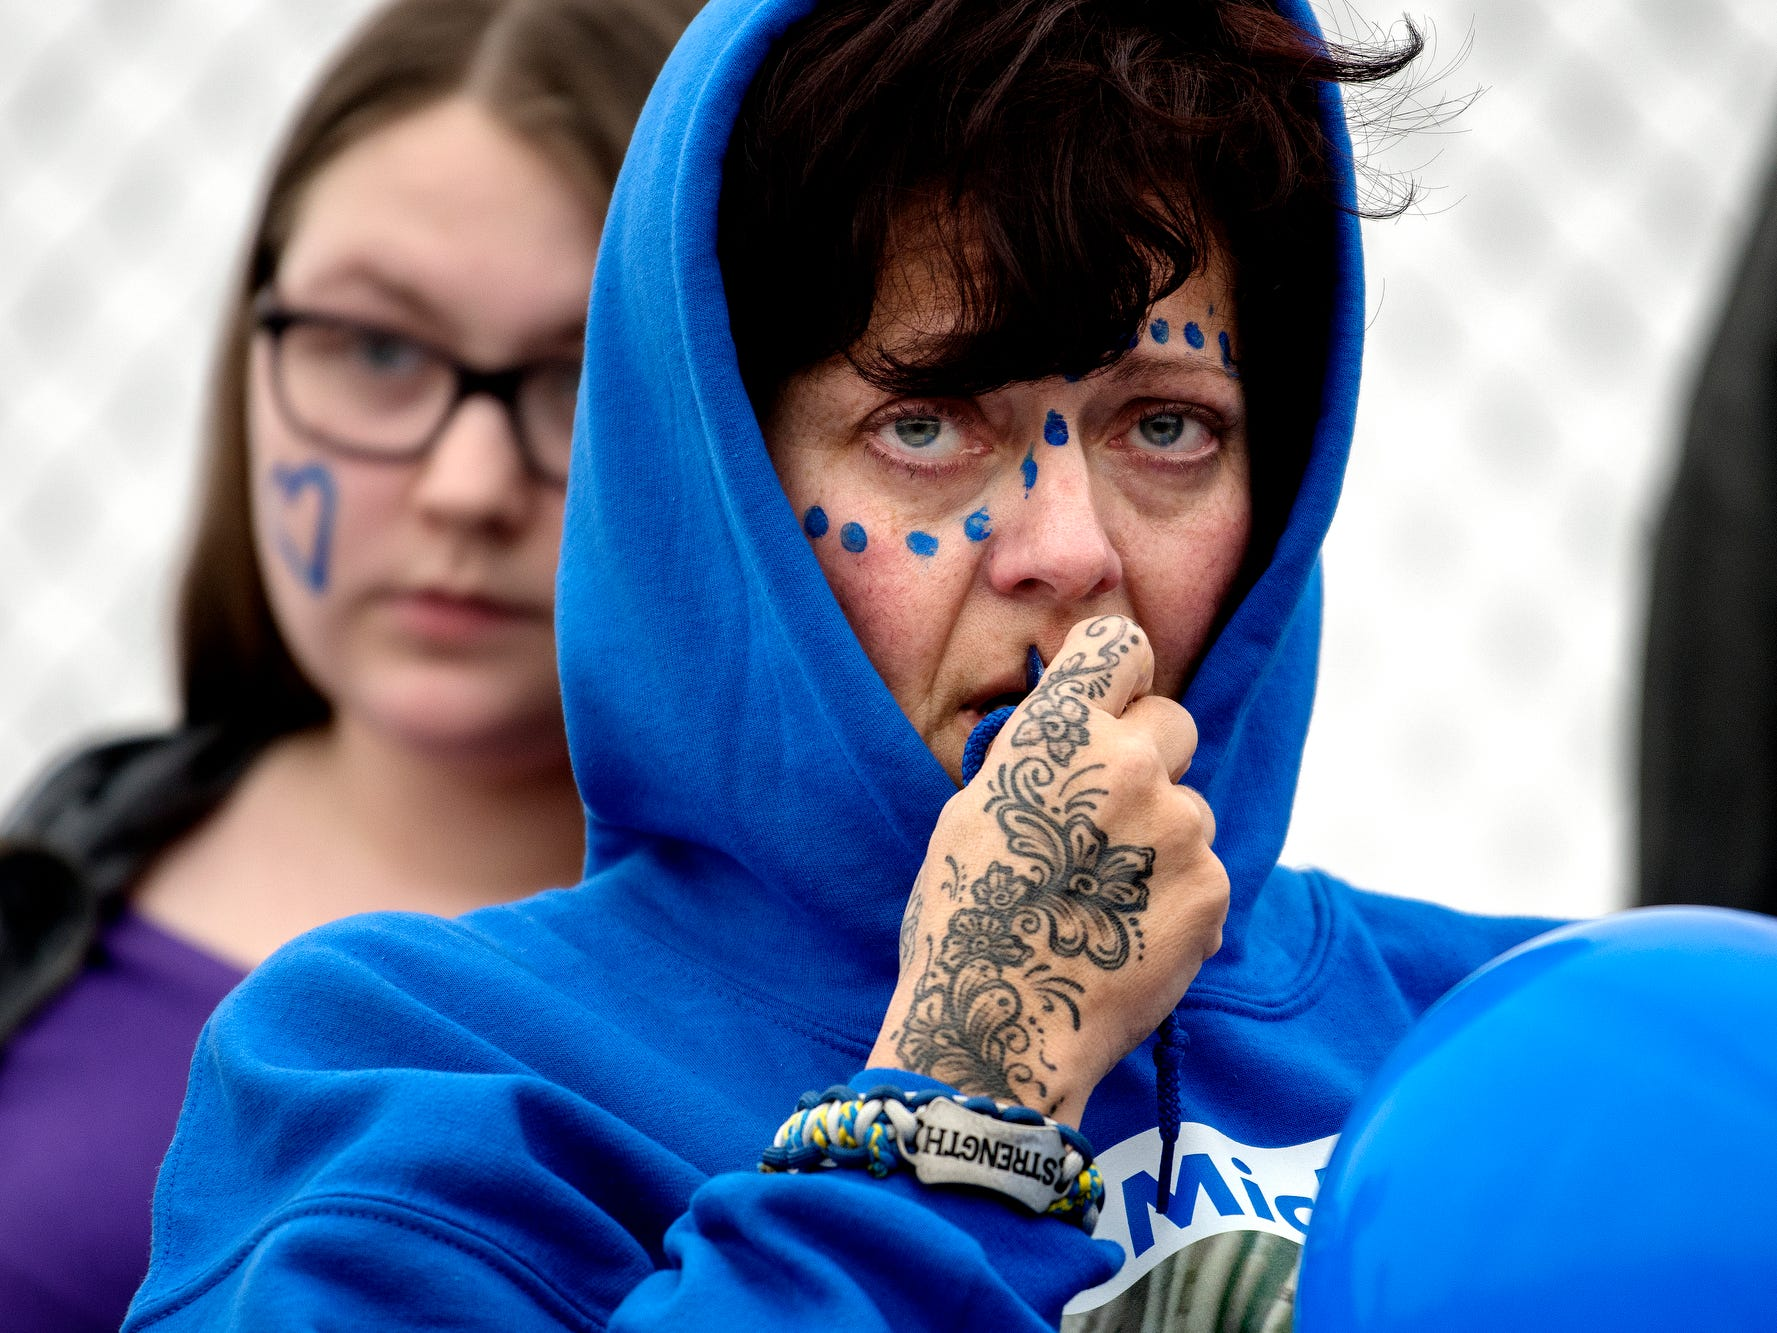 Joanna Wohlfert, the mother of 8th-grader Michael Martin, looks on during a short ceremony honoring her son on the football field at Everett New Tech High School on Monday, Feb. 4, 2019, in Lansing. Michael, 13, died Jan. 25, at Sparrow Hospital, two days after attempting suicide in his home. Wohlfert said her son had endured months of bullying.